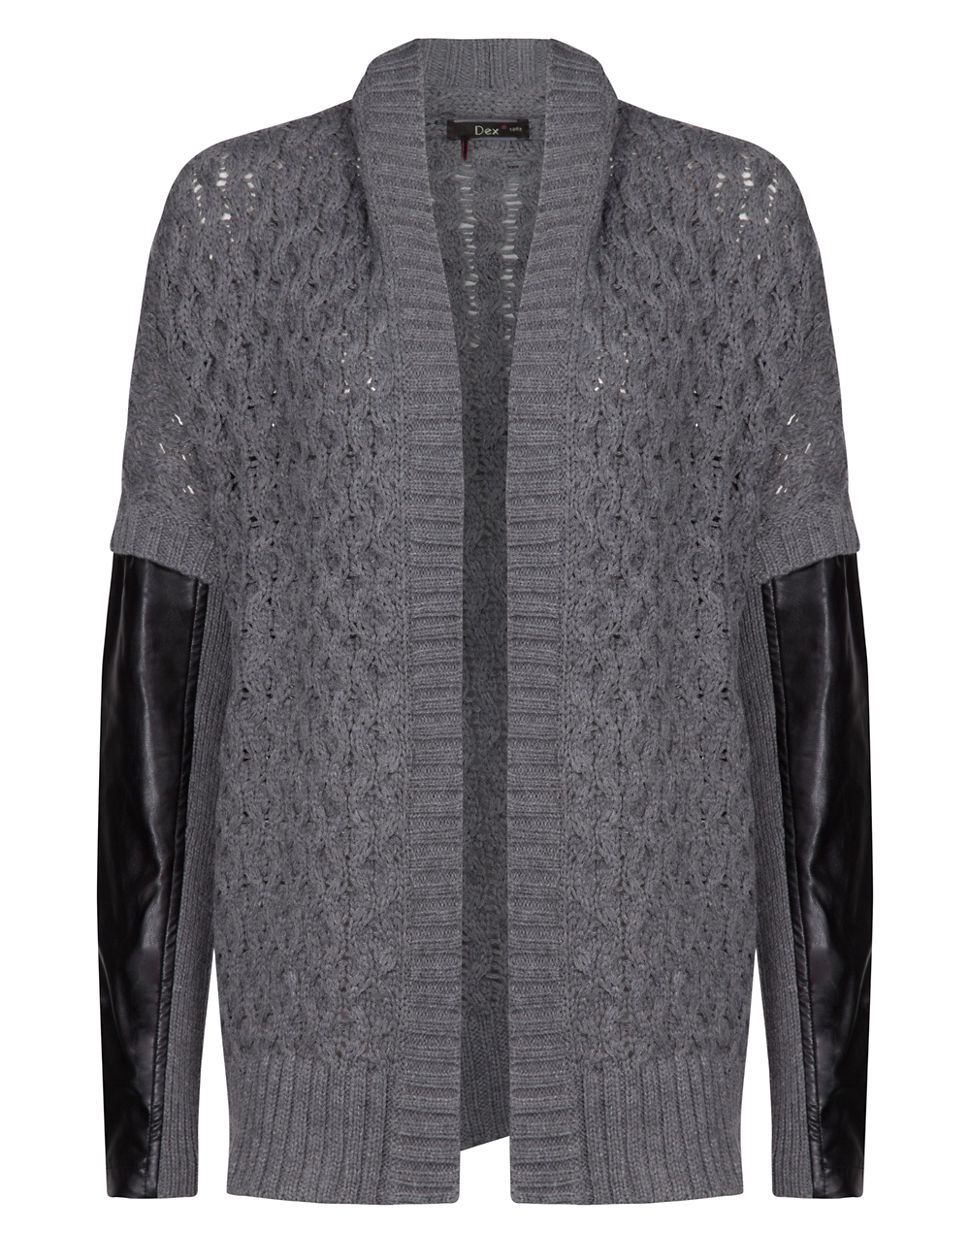 9dbaed6a8 Lyst - Dex Crocheted Cardigan With Faux Leather Paneling in Gray